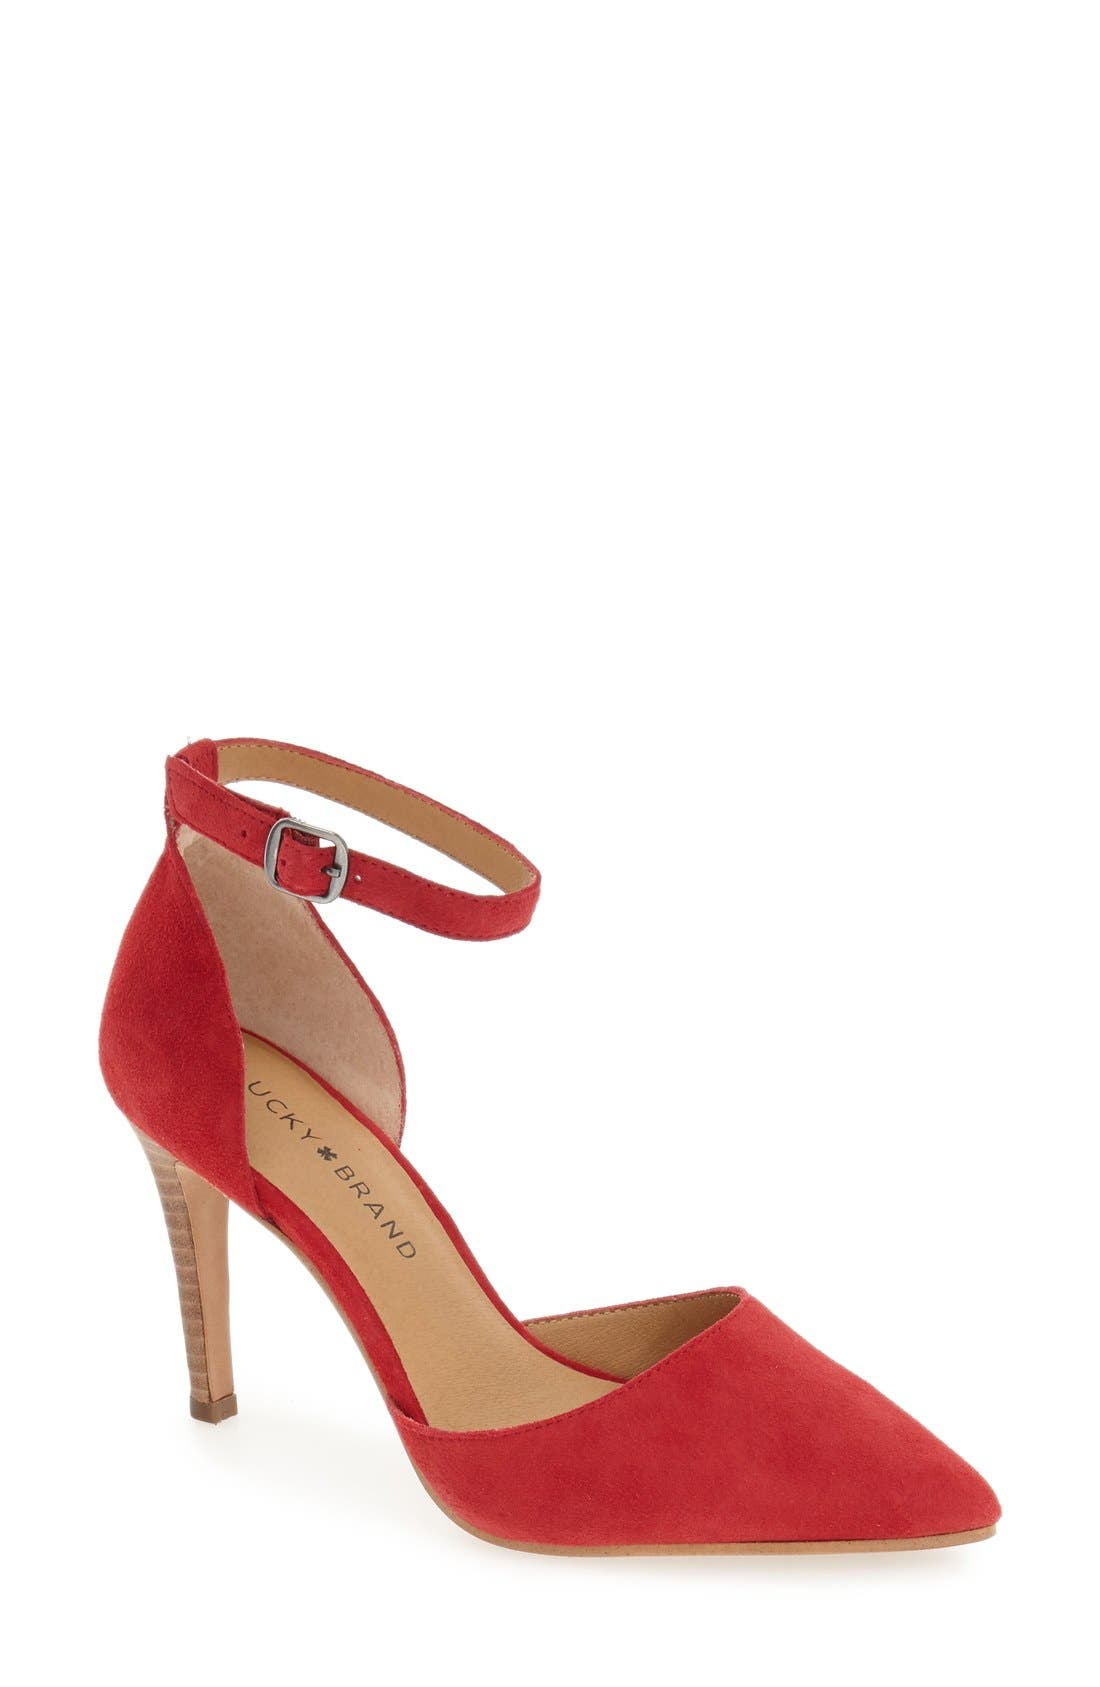 Alternate Image 1 Selected - Lucky Brand 'Tukko' d'Orsay Ankle Strap Pump (Women)